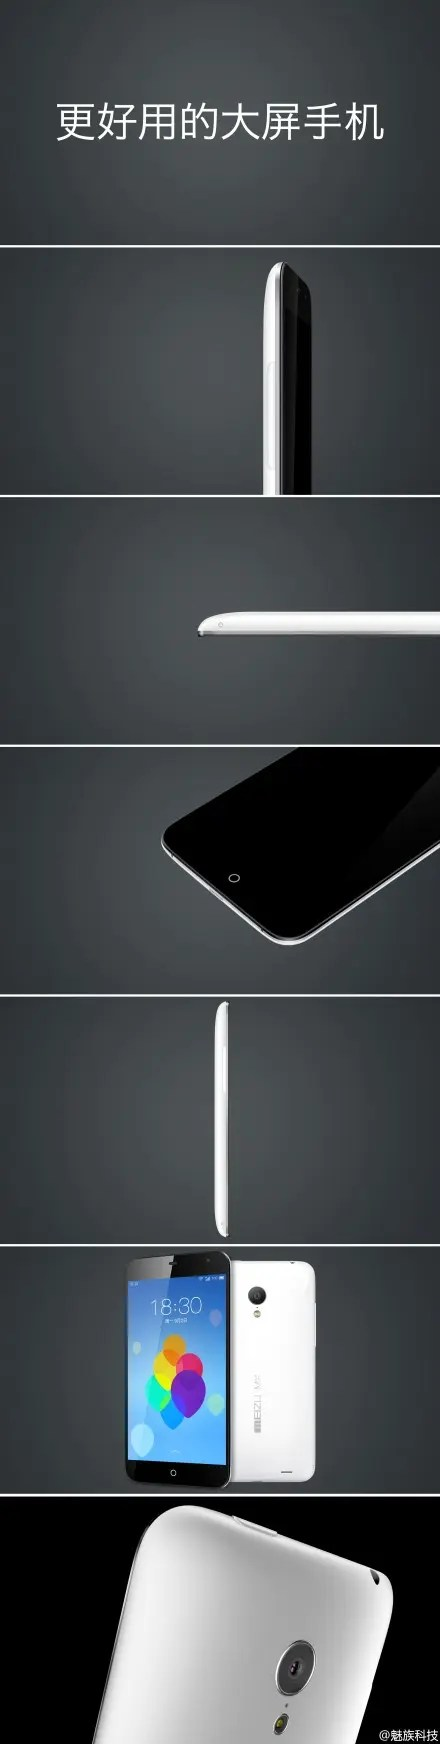 01378121864 Meizu MX3 Launch Full specifications and details!